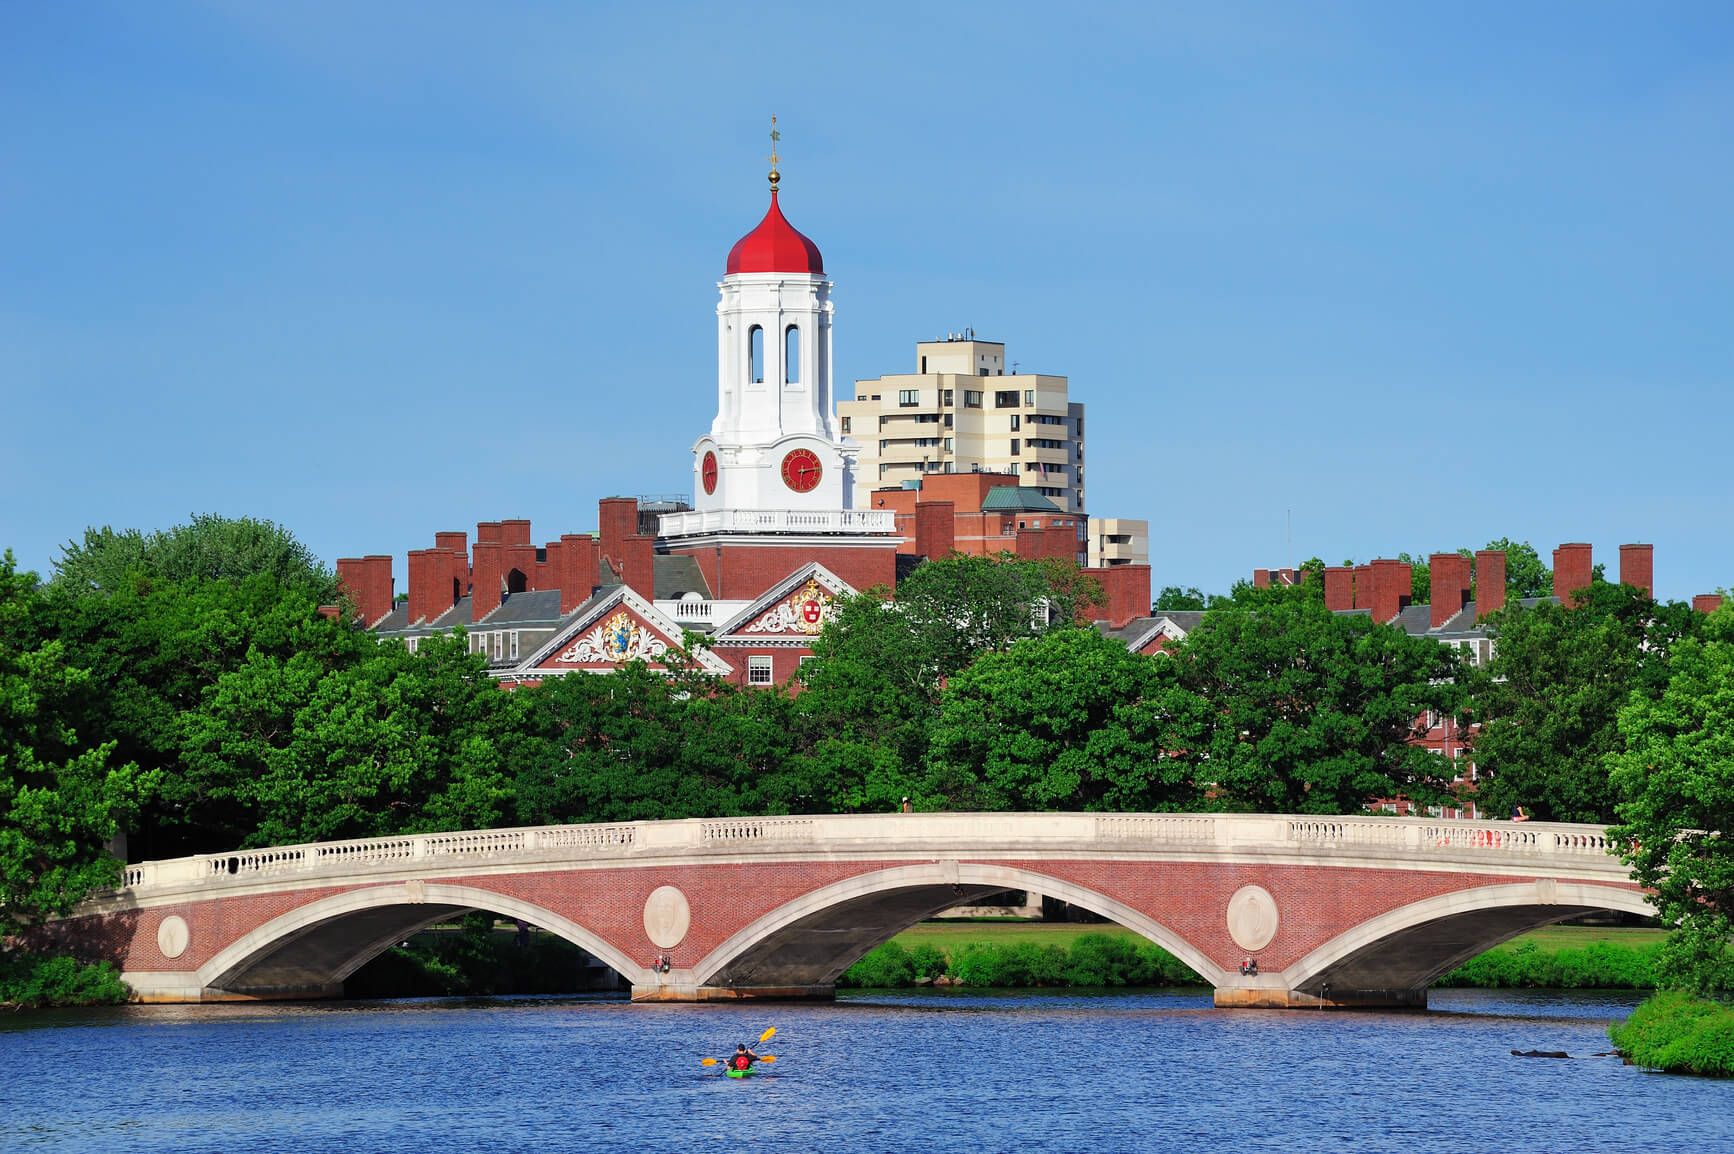 Oslo, Norway to Boston, USA for only €248 roundtrip (Sep-Mar dates)